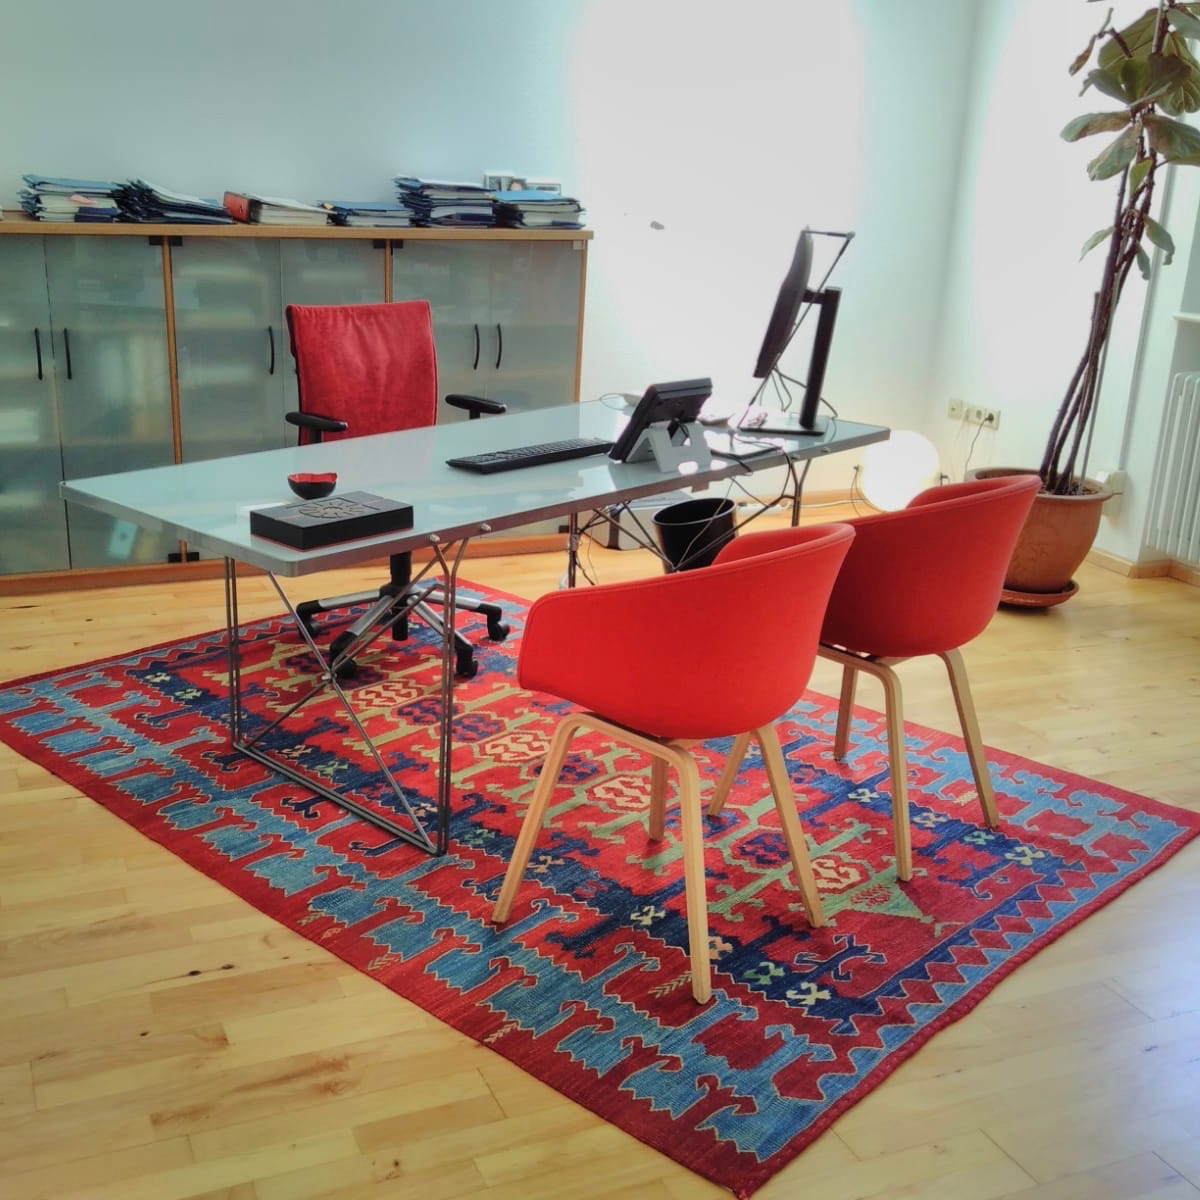 Workspace - A TURKISH KILIM IN COMBINATION WITH DESIGN FURNITURE FOR THE OFFICE OF A LAWYER IN FREIBURG, GERMANY